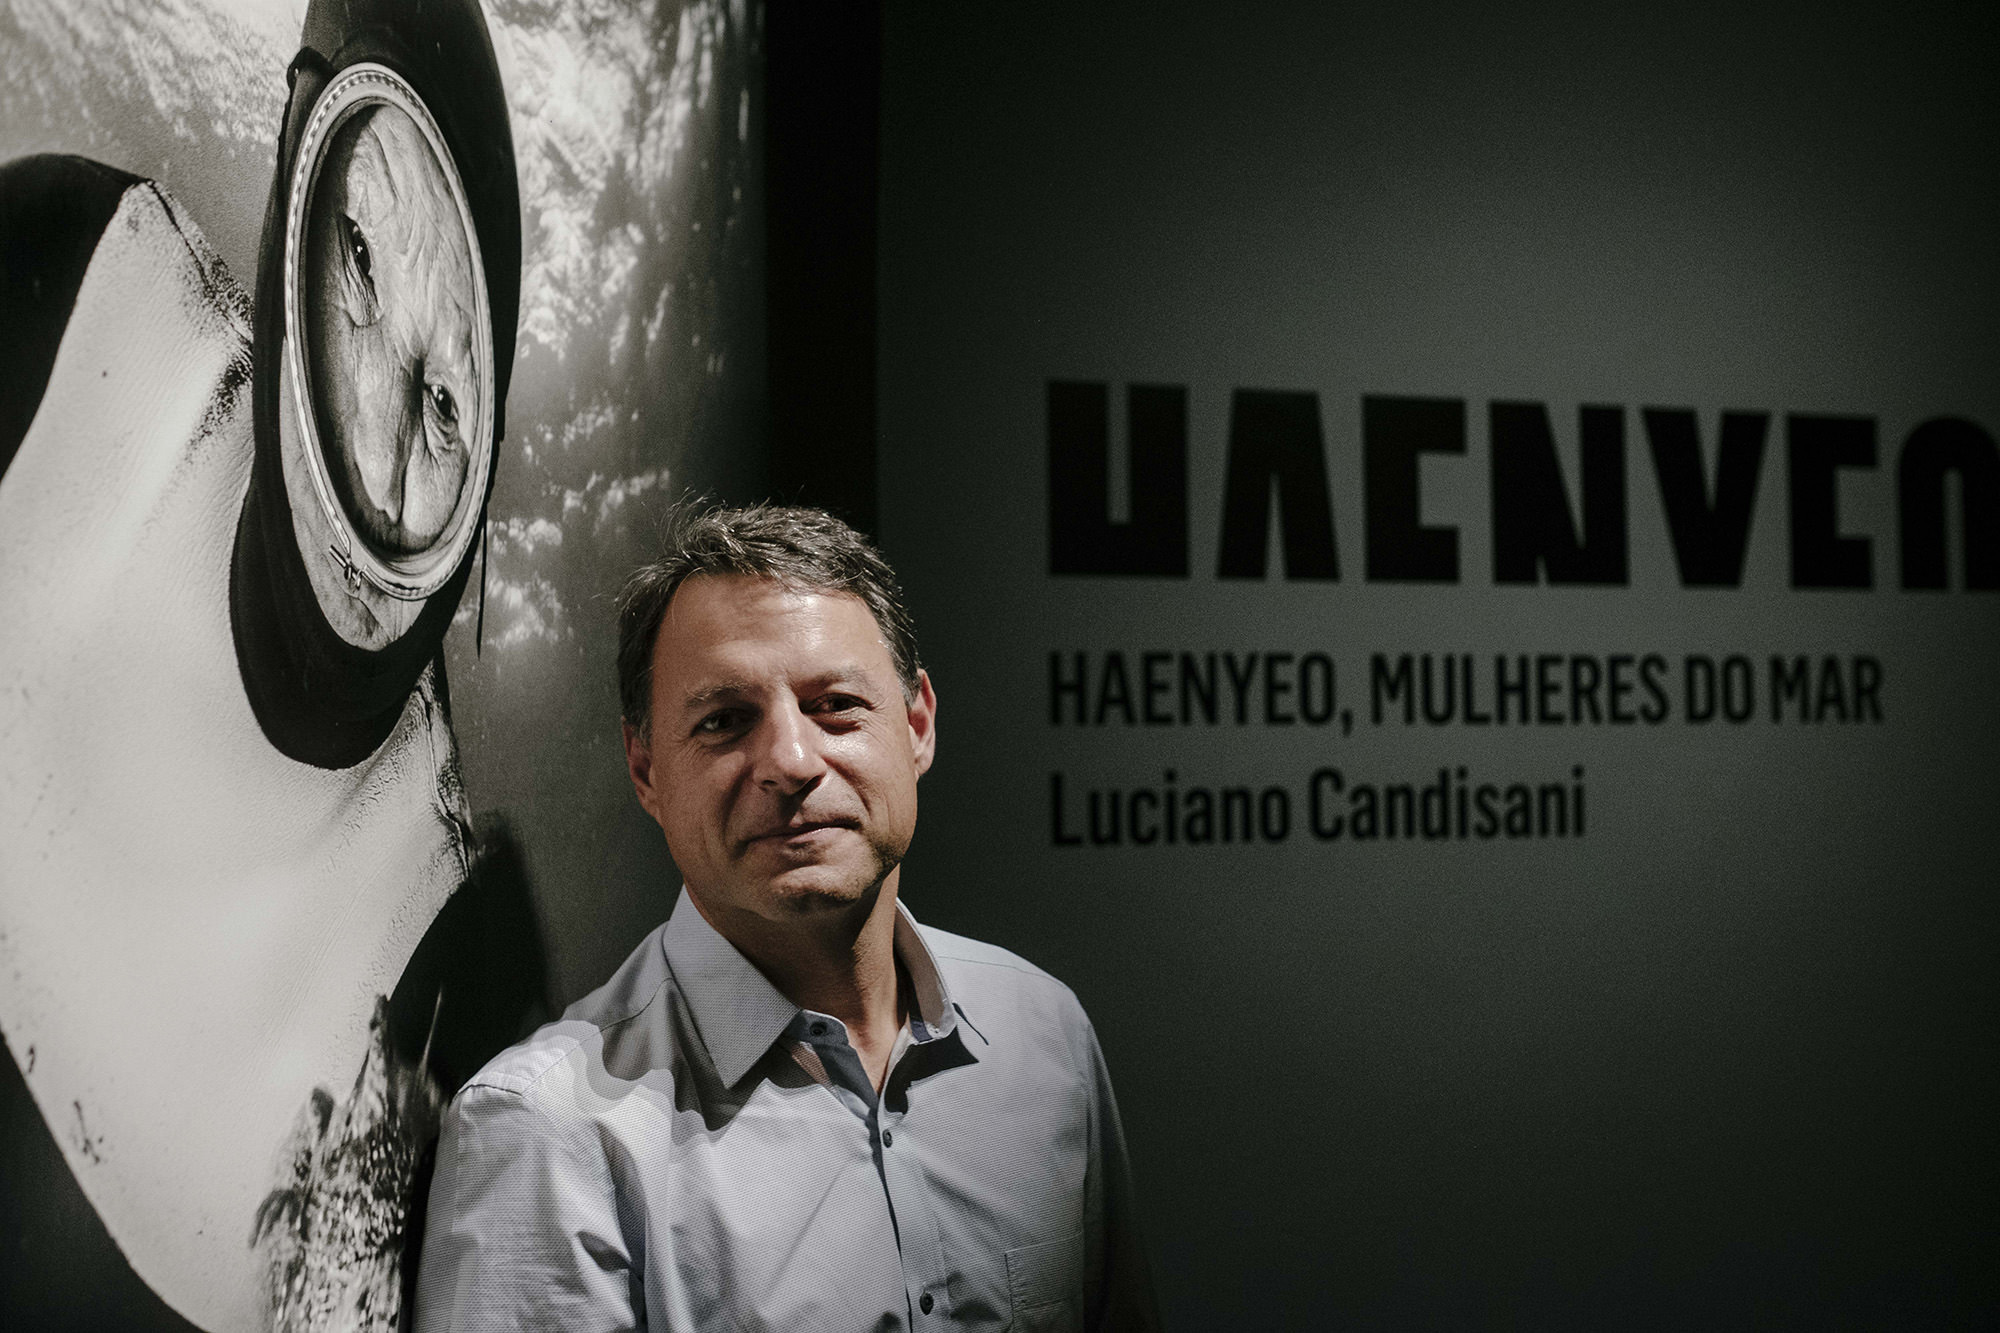 Luciano Candisani